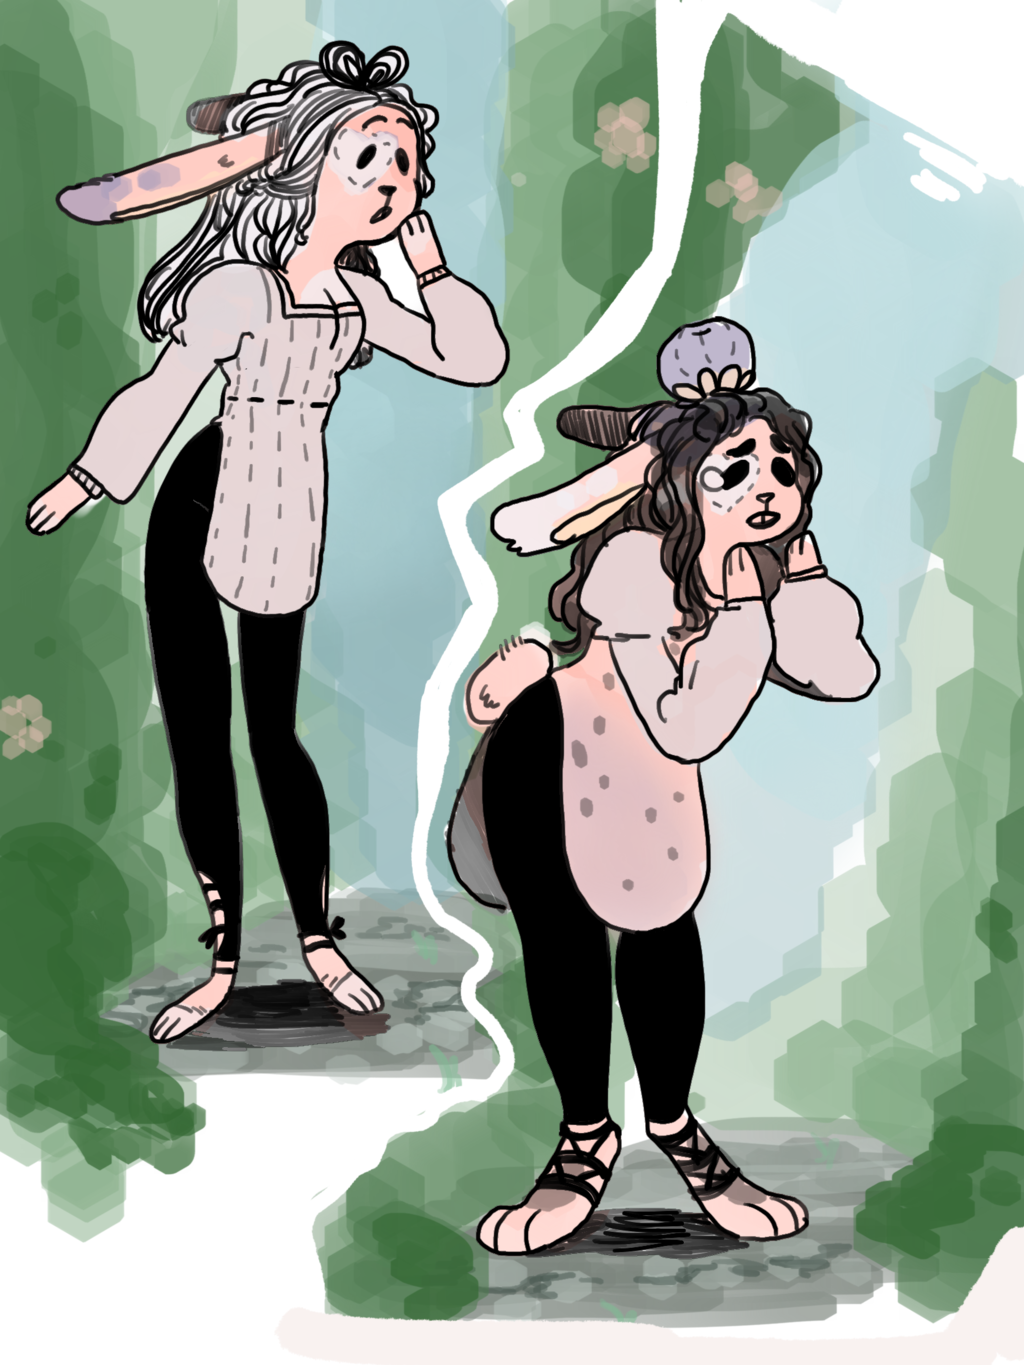 Most recent image: Blossom Bunny